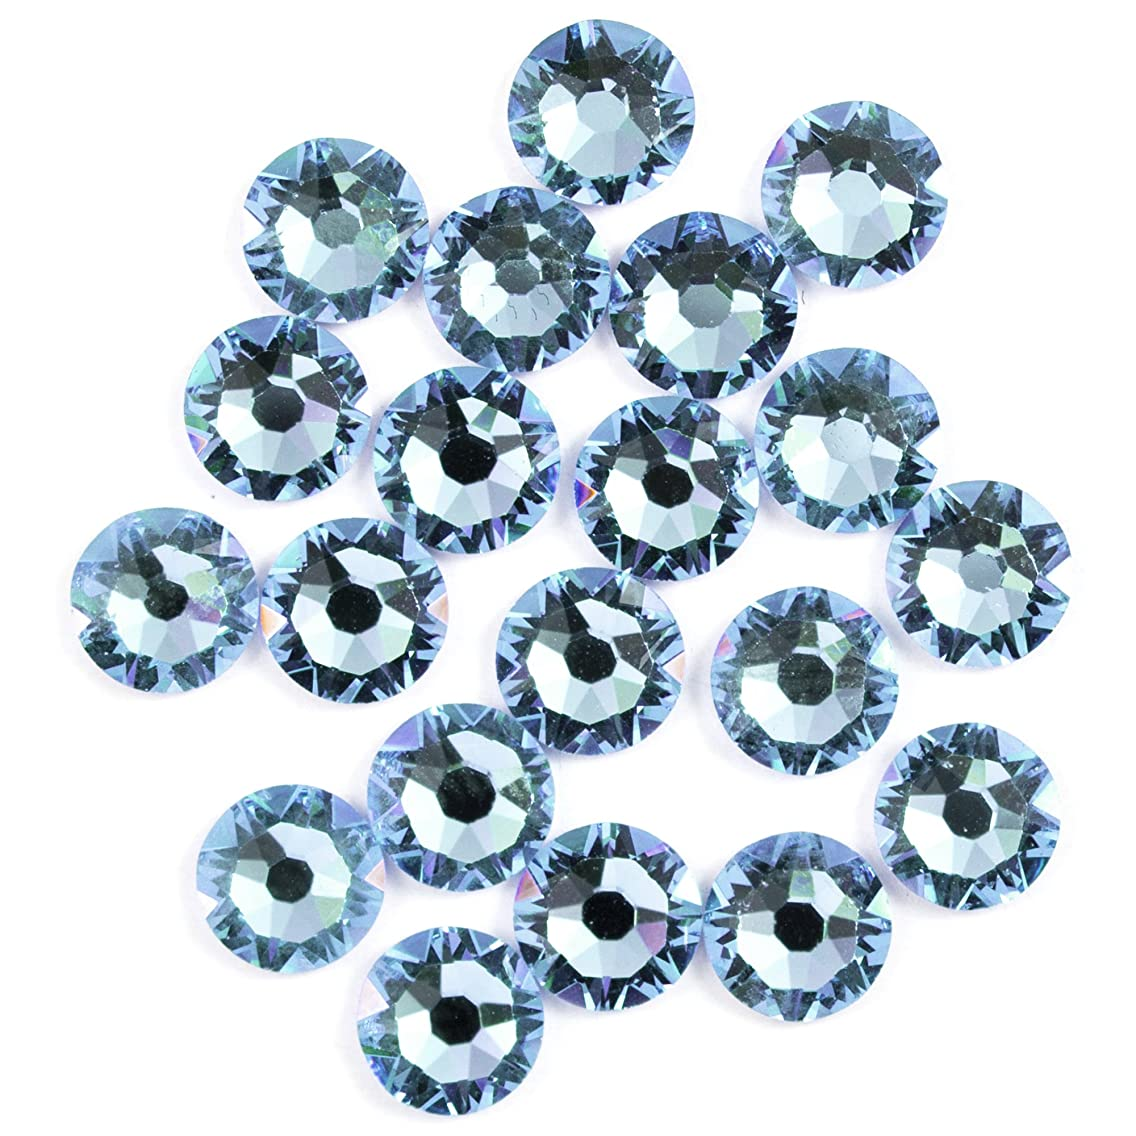 Swarovski - Create Your Style Hotfix 5mm Aquamarine 3 packages of 20 Piece (60 Total Crystals)